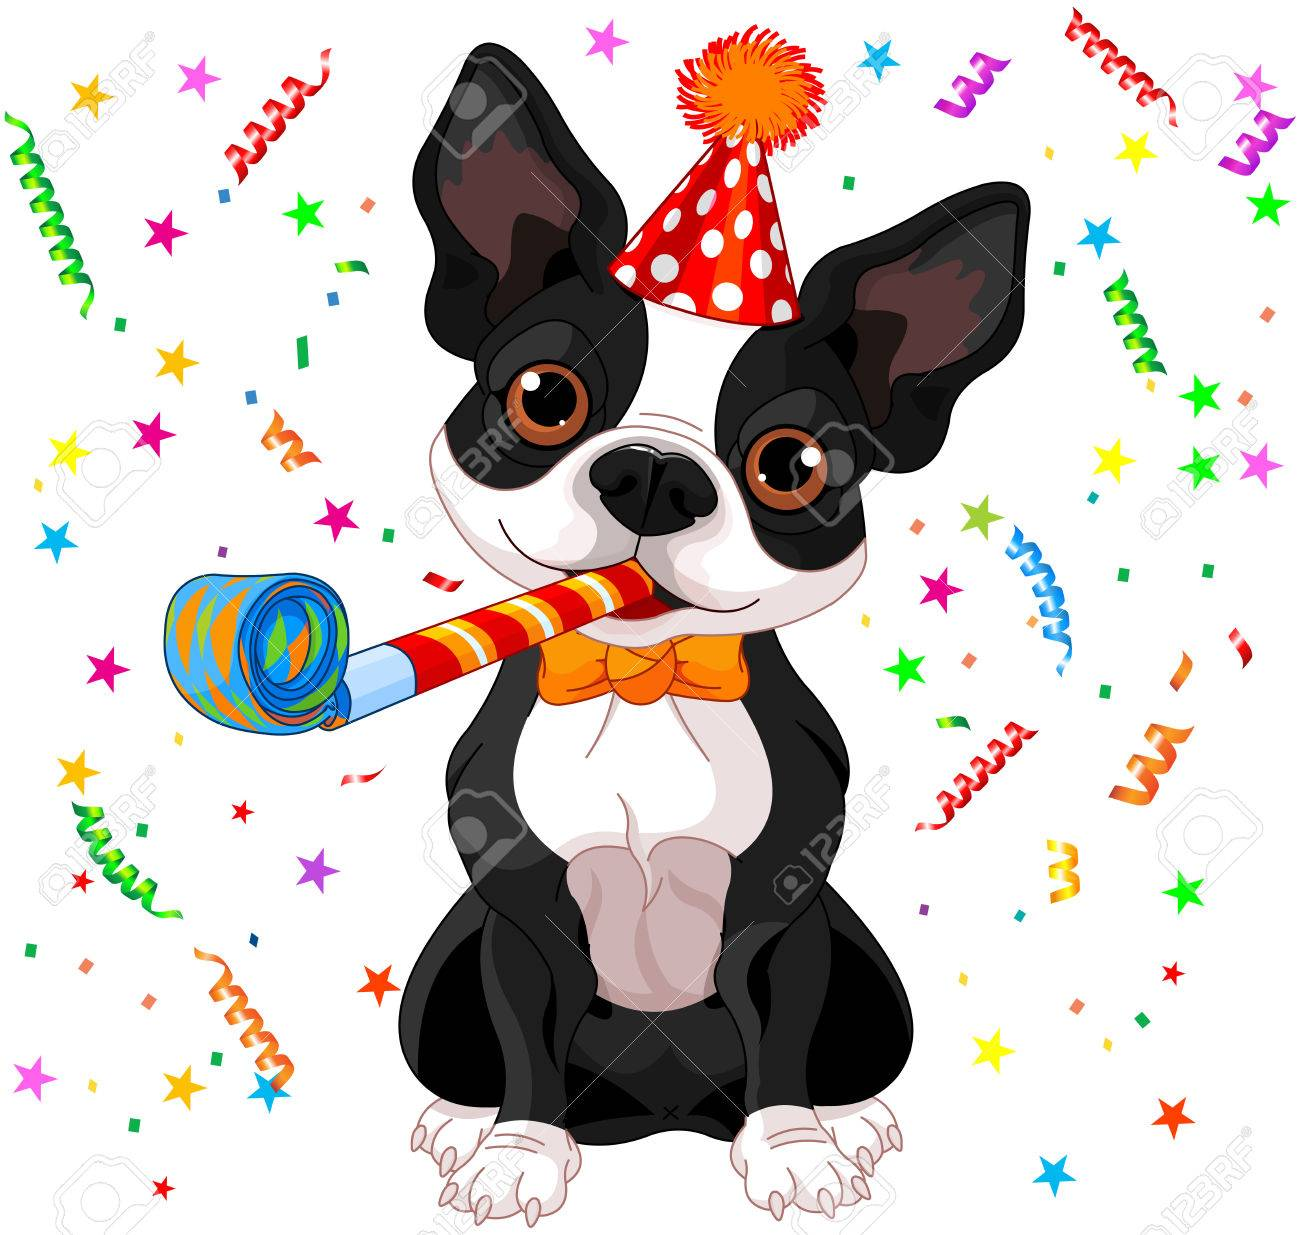 Post-it: marche en laisse 35588778-illustration-of-cute-boston-terrier-celebrating